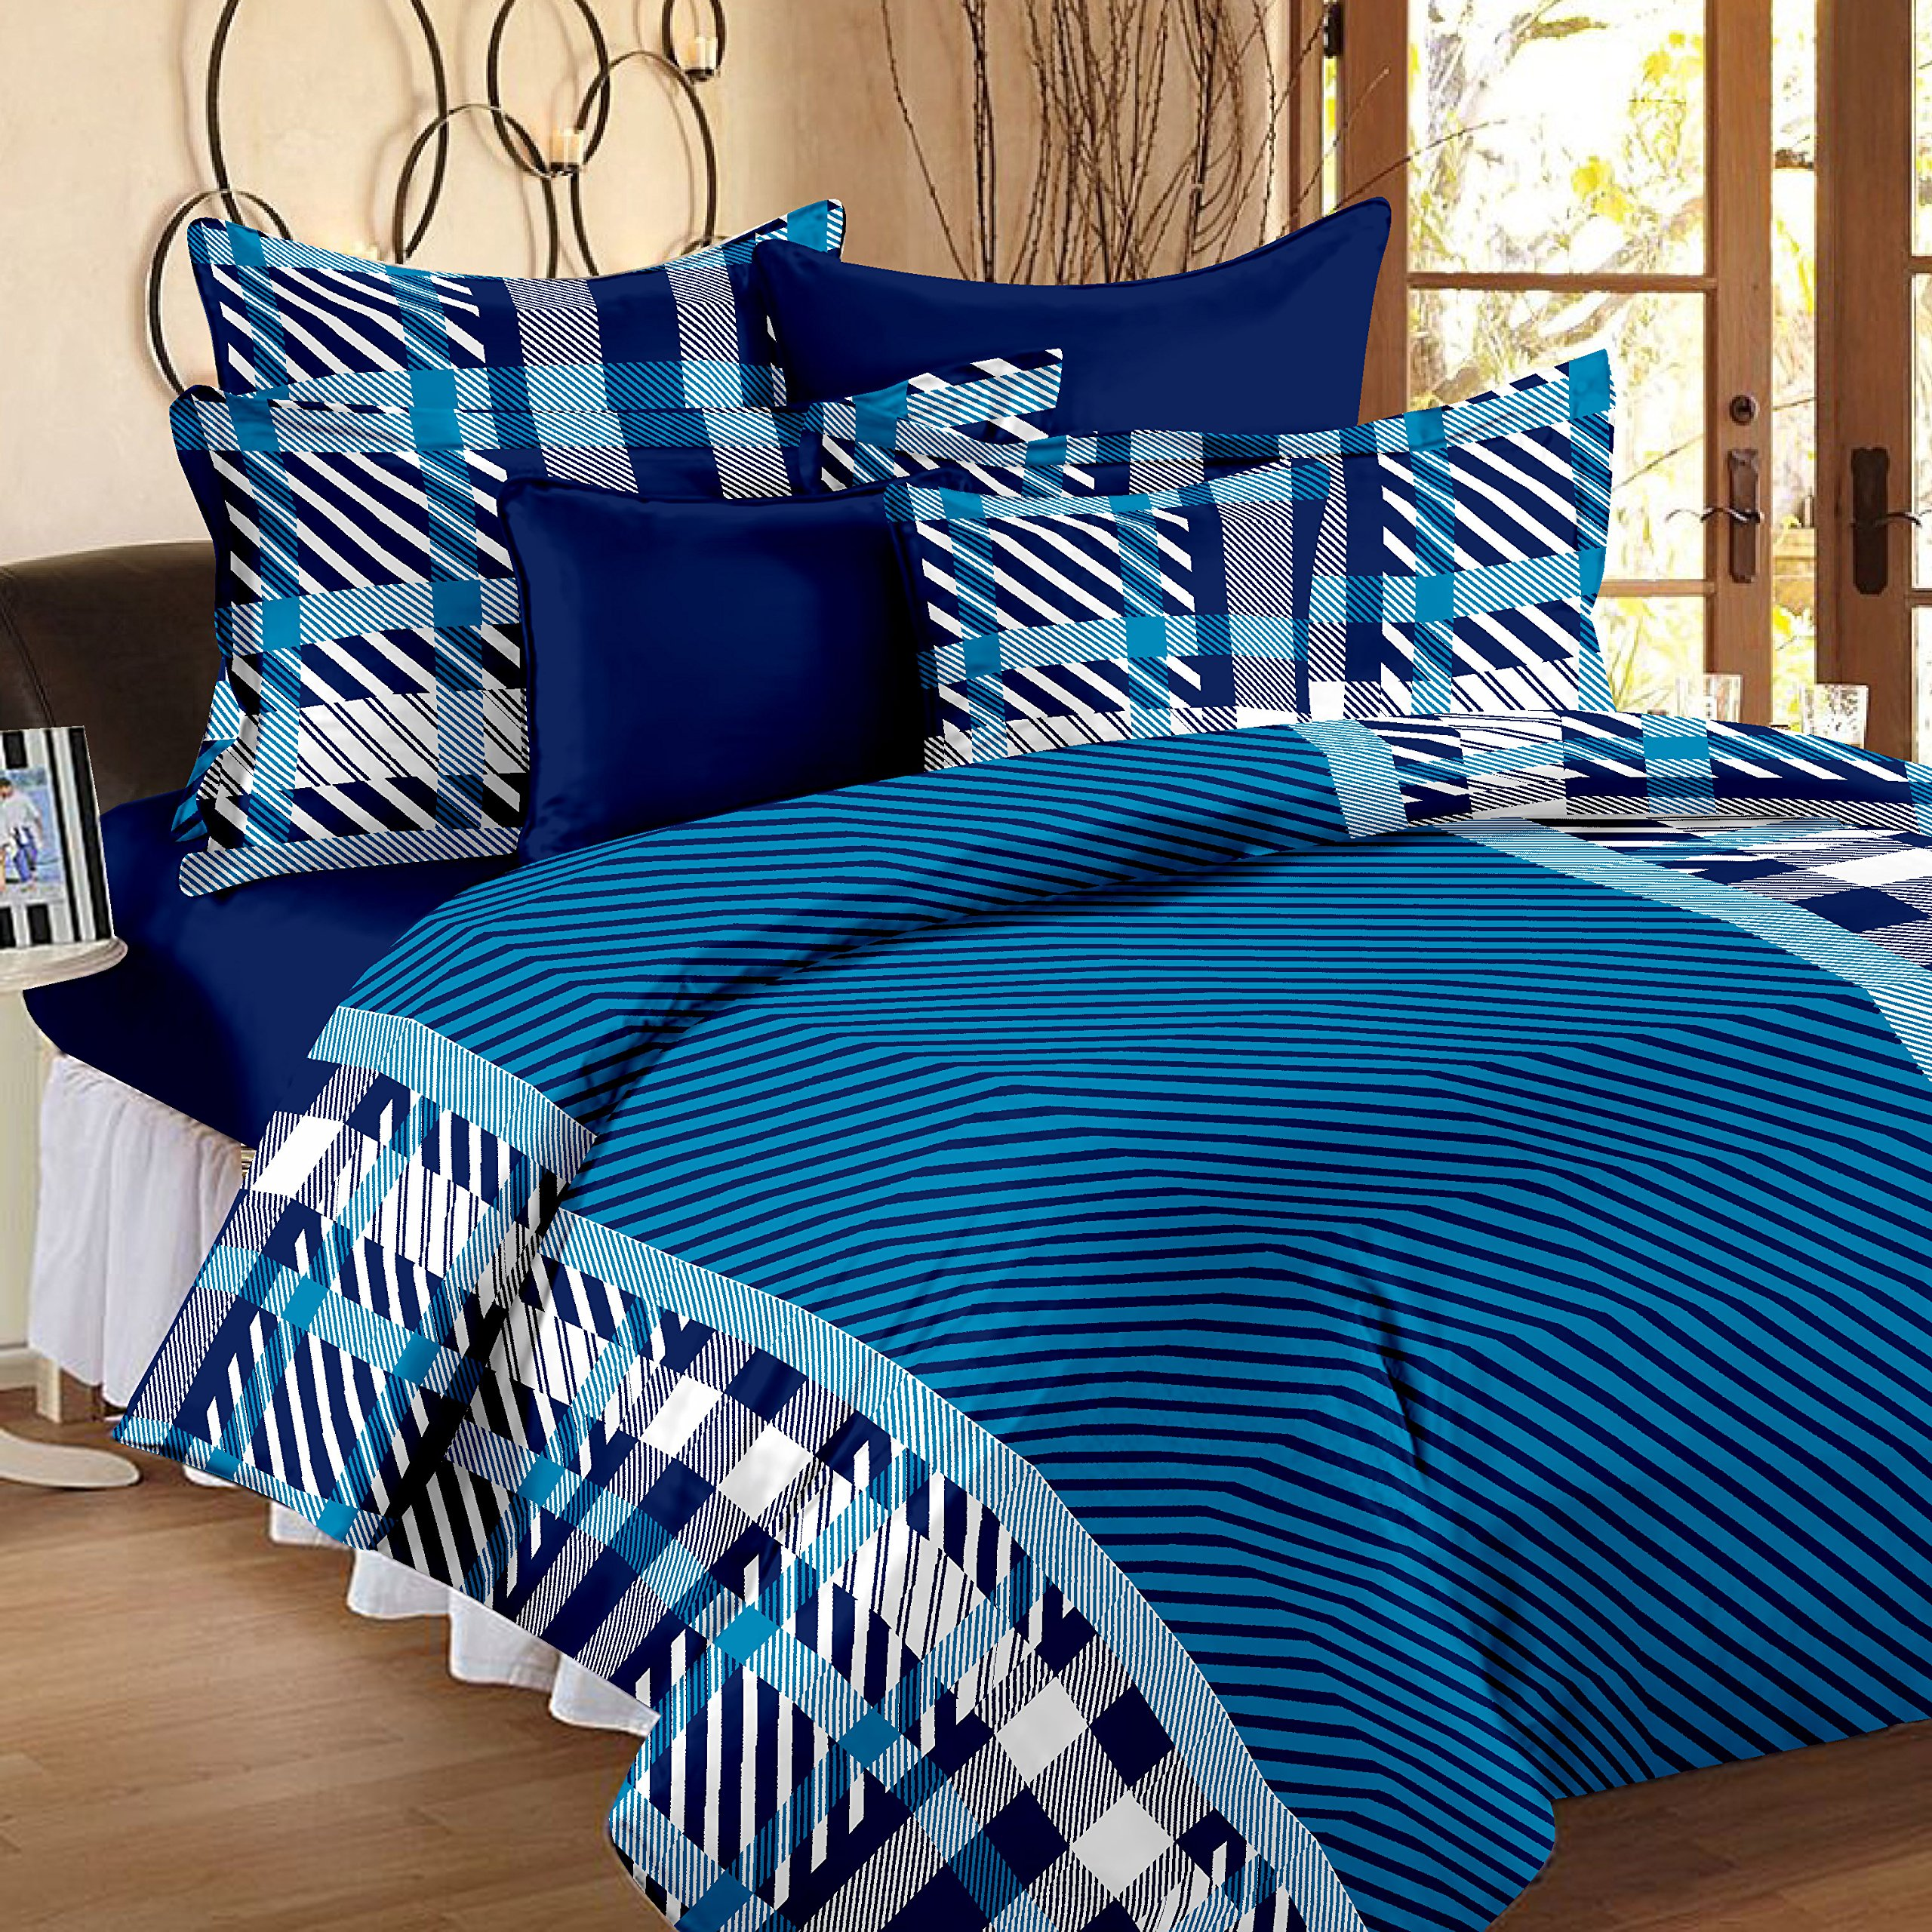 Best Quality Sheets On Amazon Bed Linen Buy Bed Linen Online At Best Prices In India